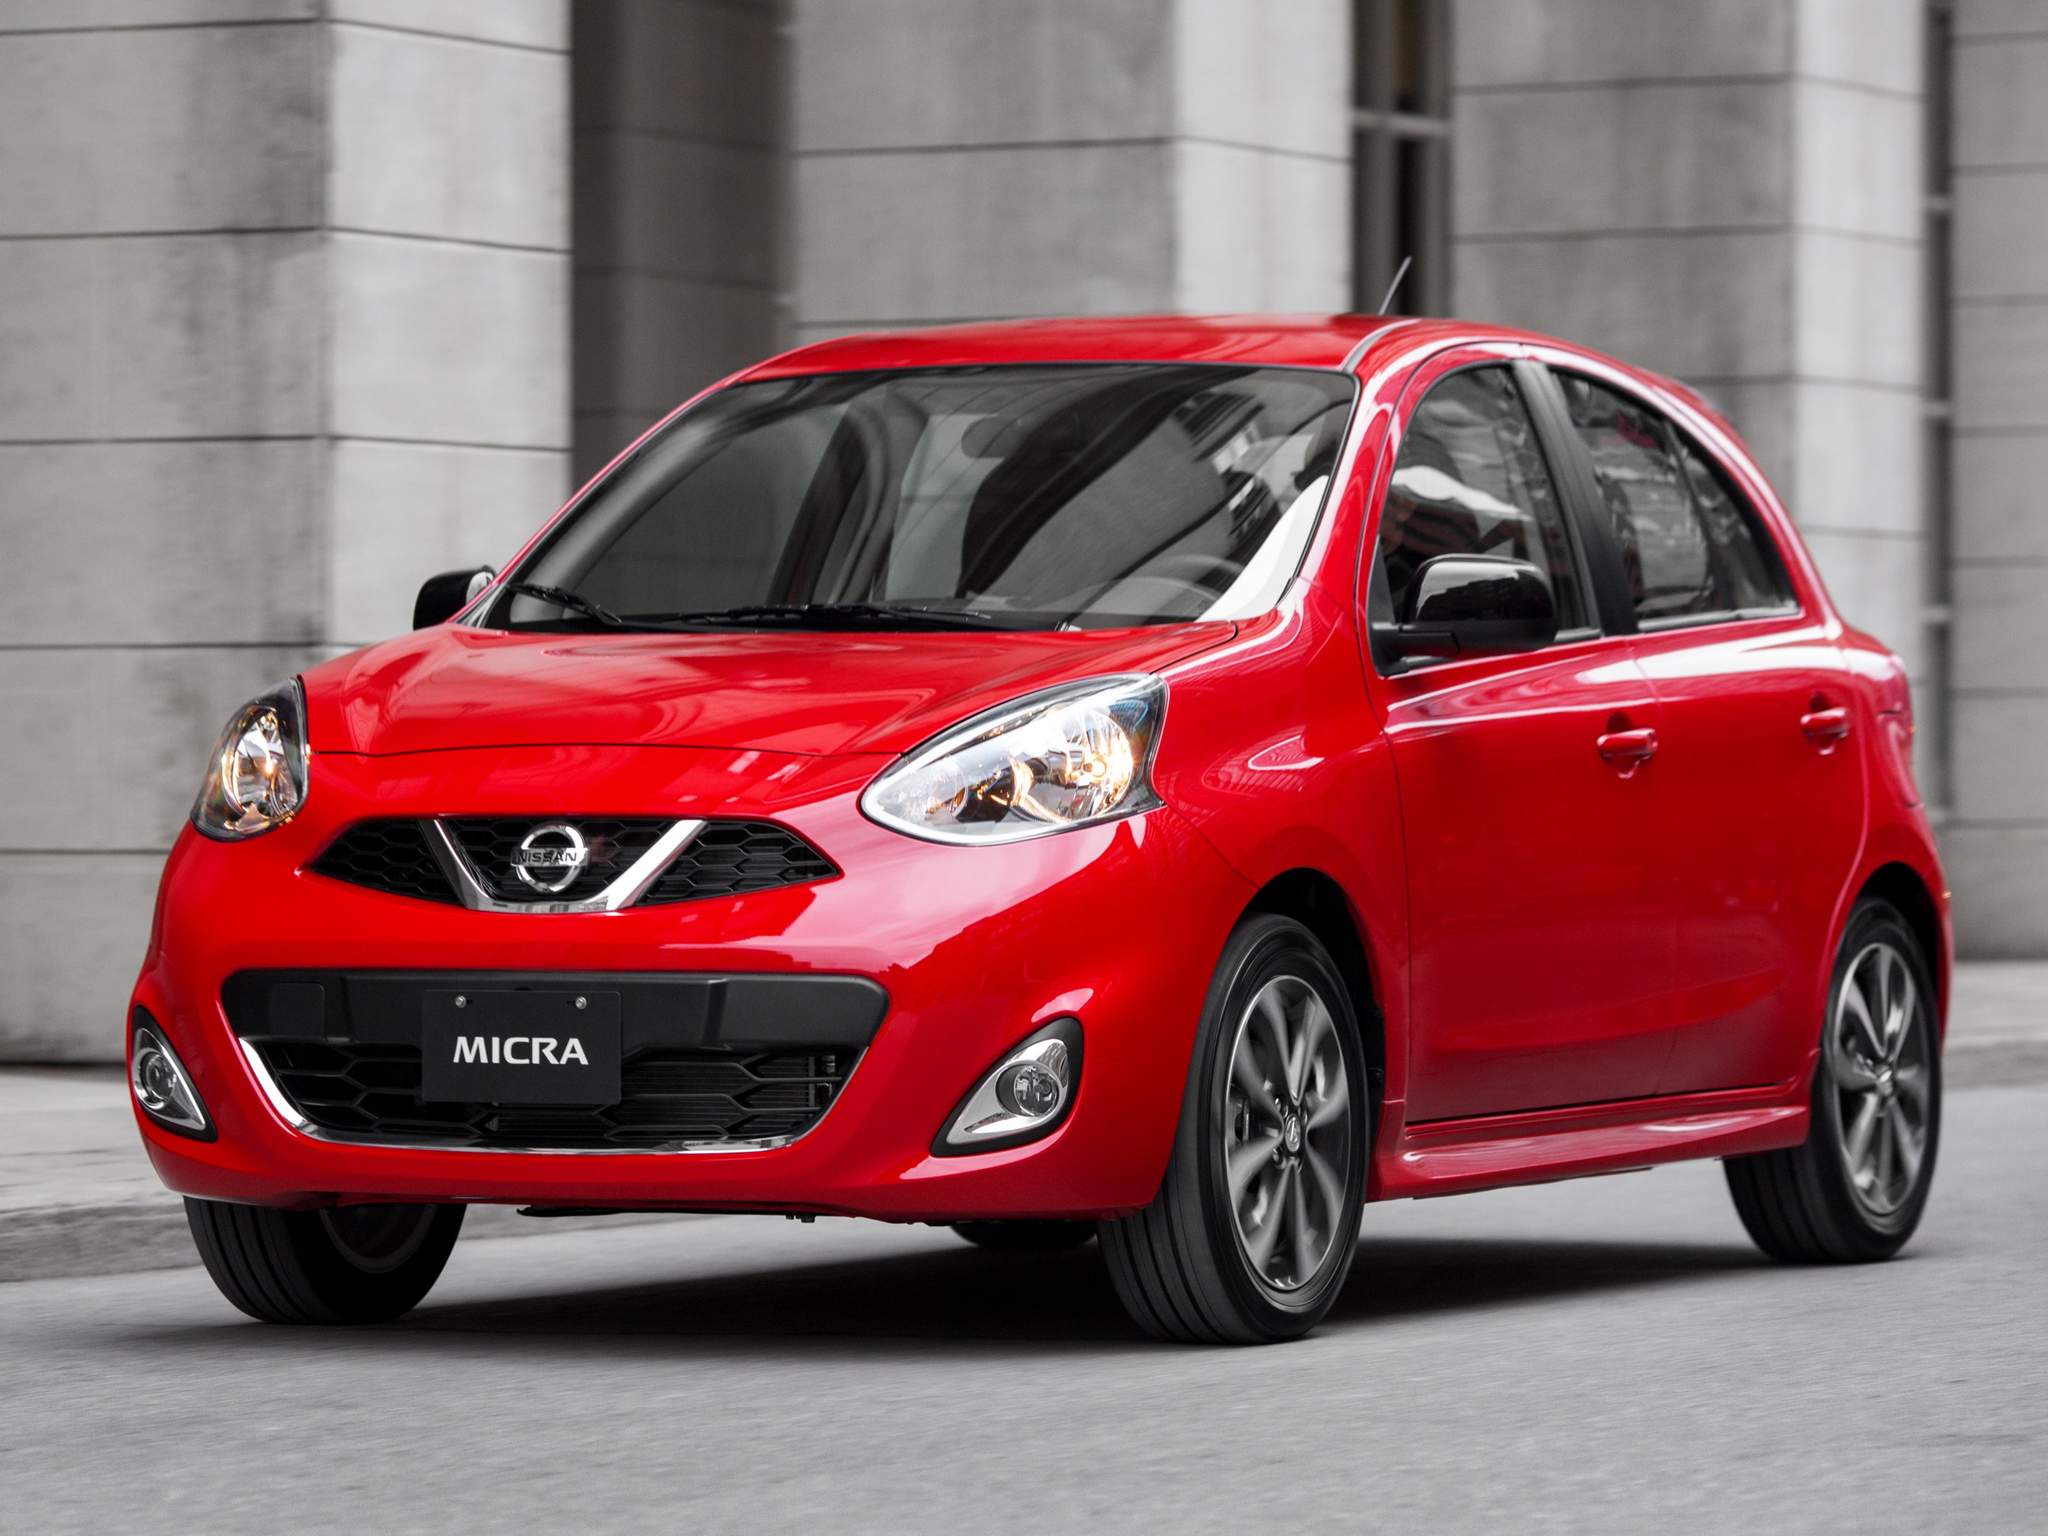 2014 nissan micra ca spec k13 t wallpaper 2048x1536. Black Bedroom Furniture Sets. Home Design Ideas